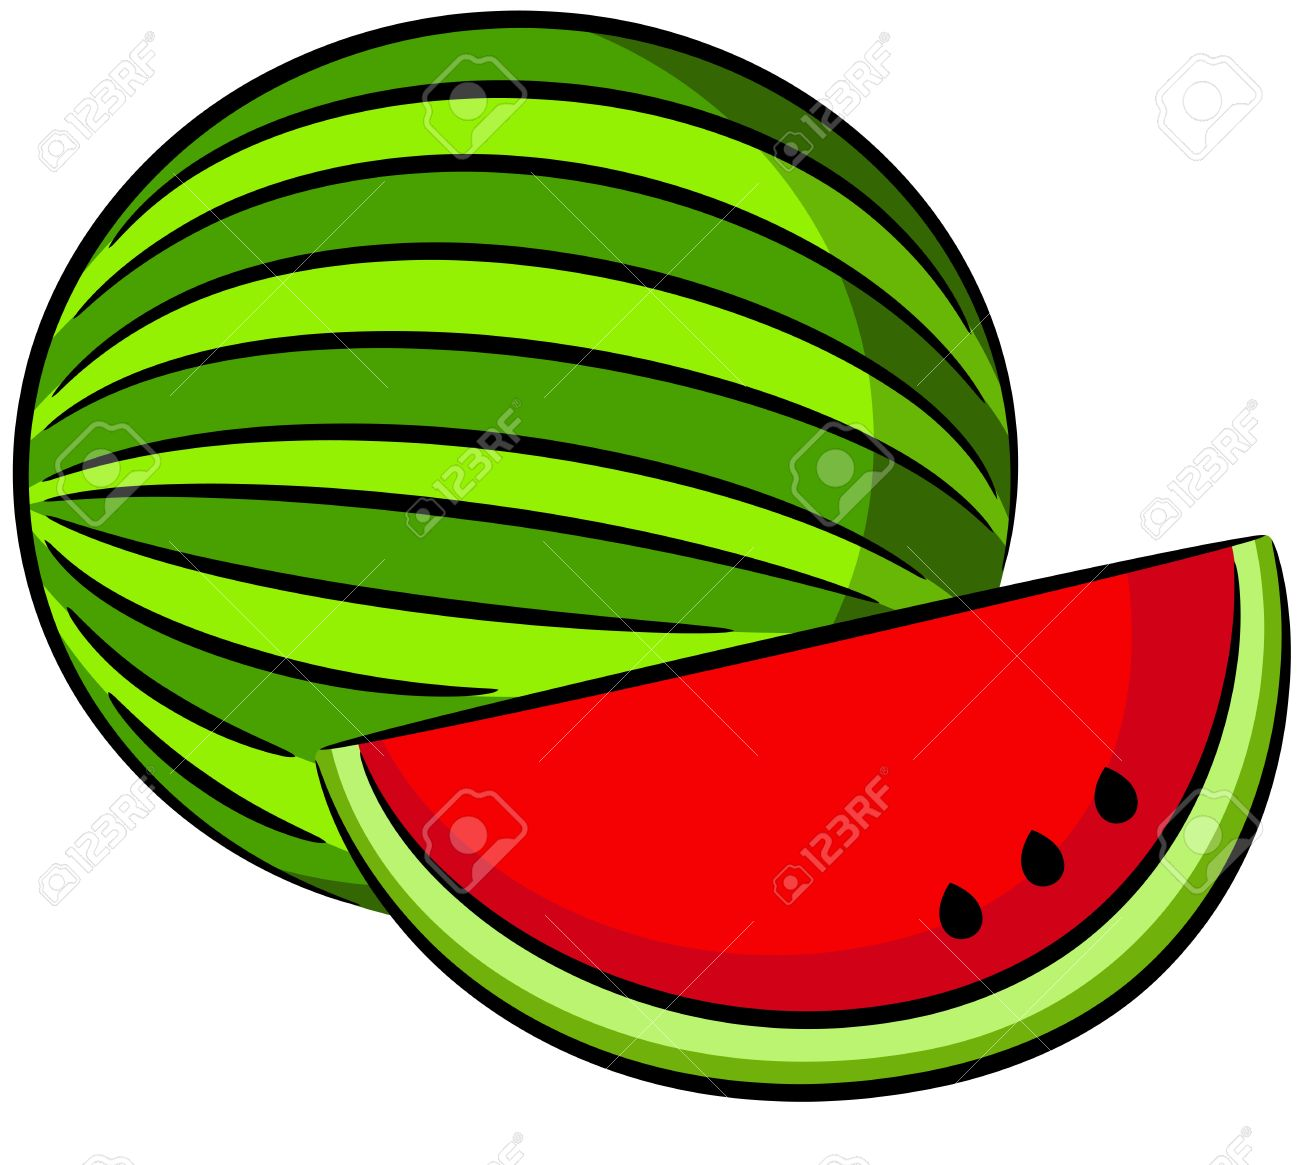 Melone clipart 7 » Clipart Station.